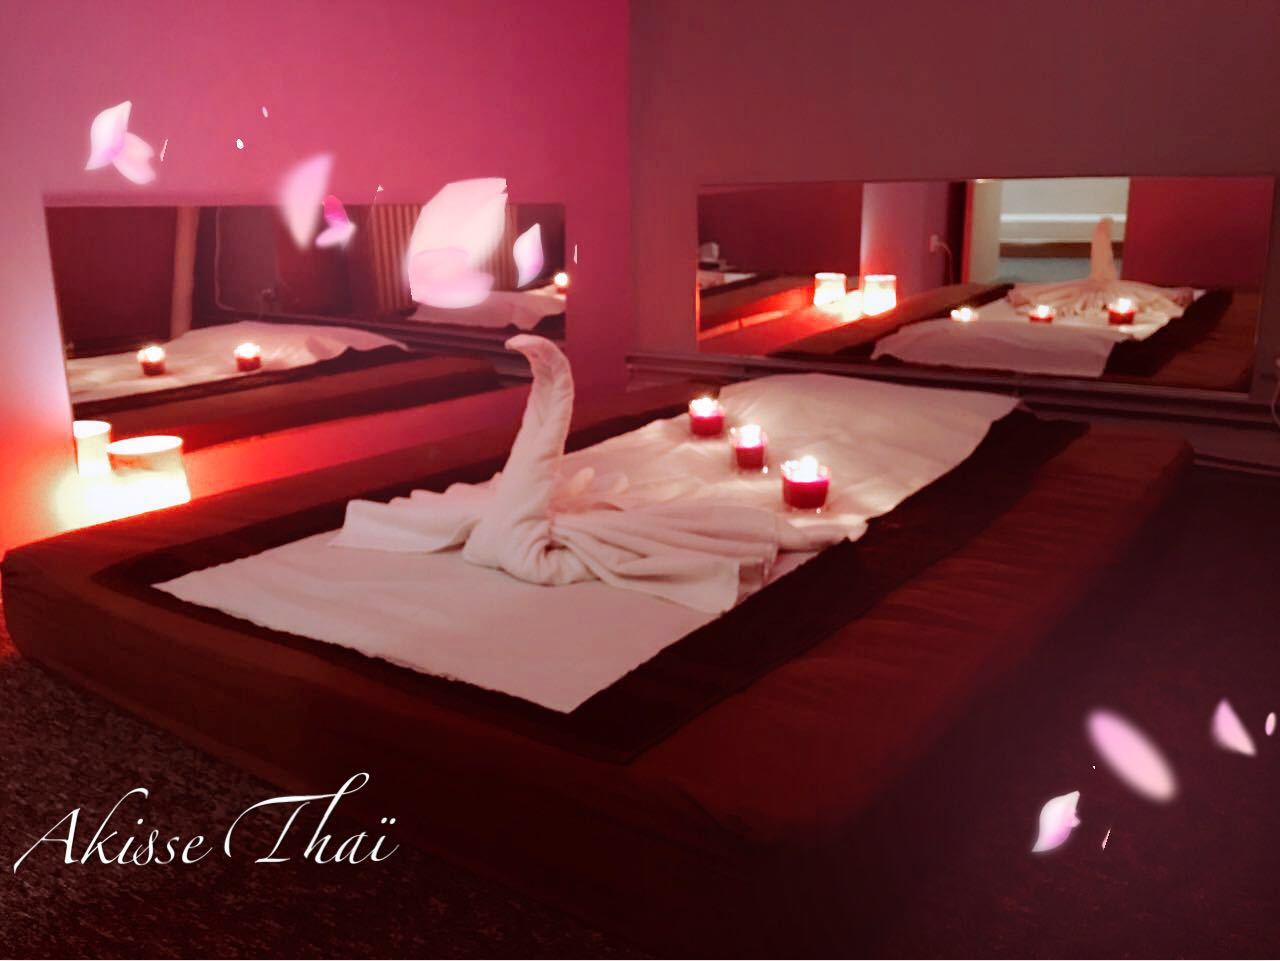 Akisse tha spa massages naturistes et sensuels paris 75005 - Salon massage naturiste paris 8 ...